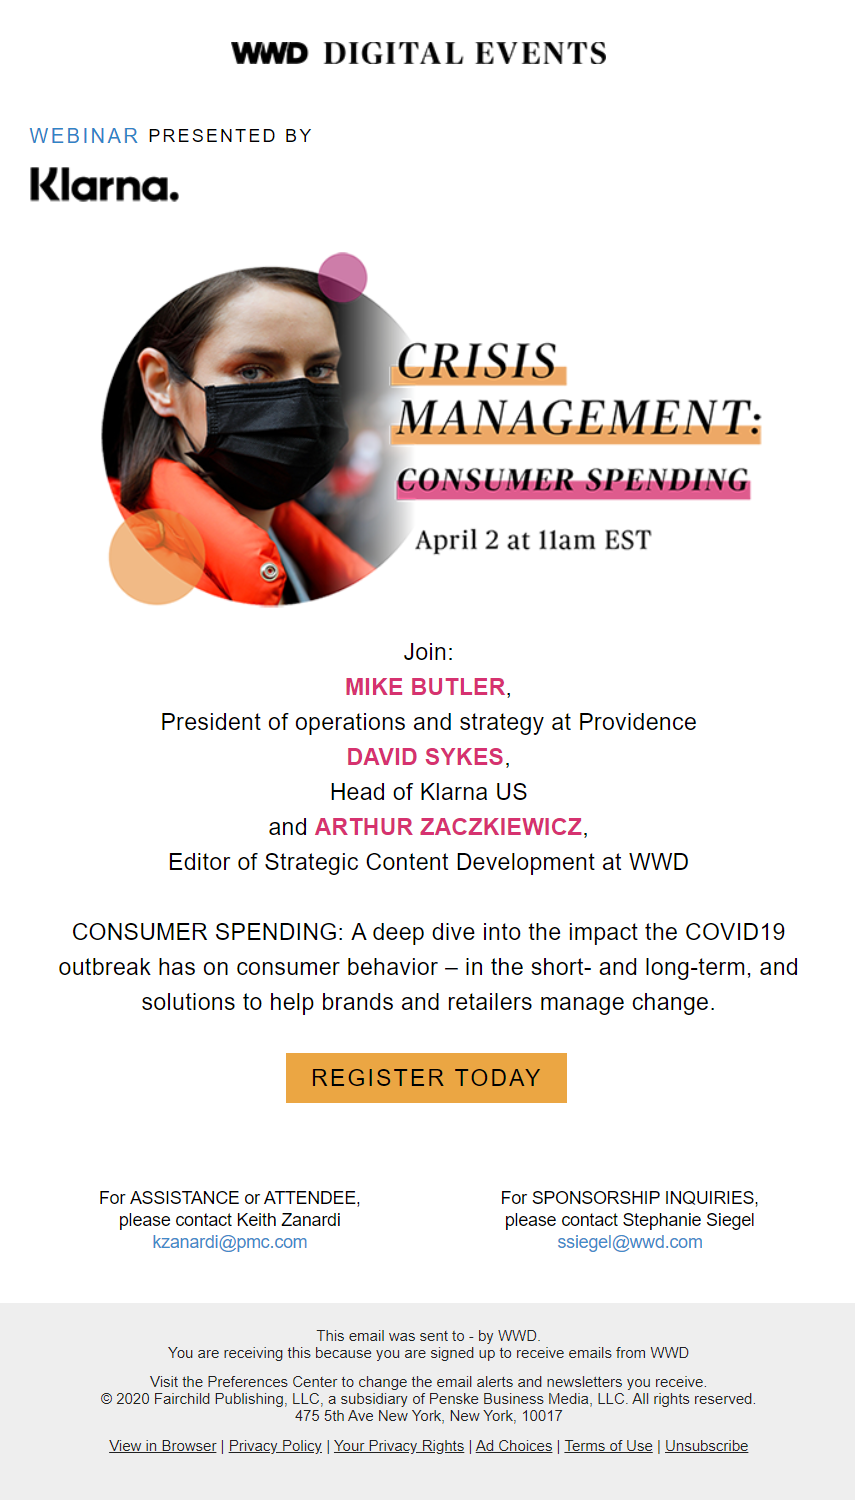 womensweardaily-register-now-wwd-webinar-series-crisis-management-and-the-coronavirus-on-BwE